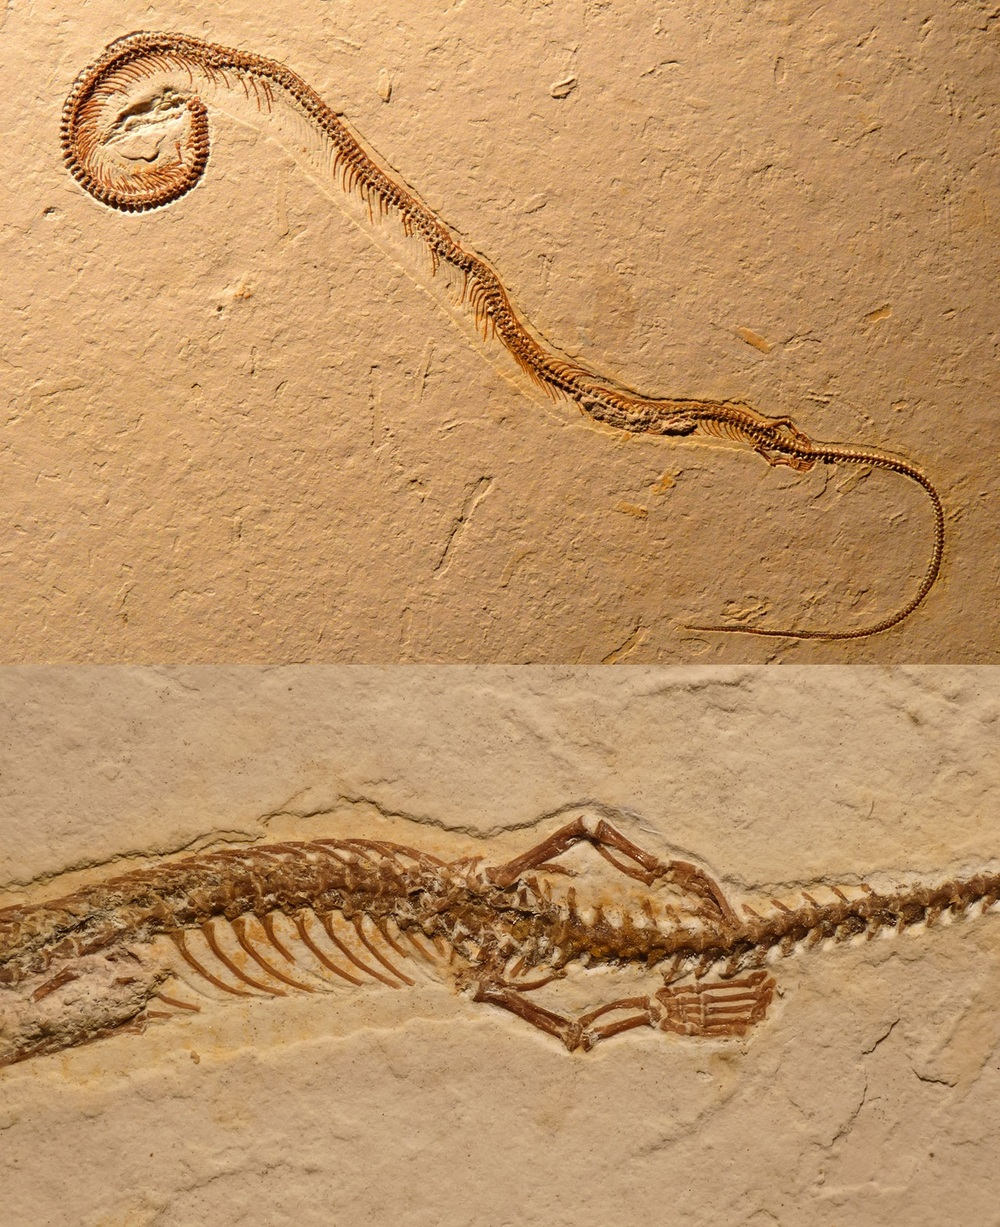 The fossil of Tetrapodophis amplectus, showing its full snake-like skeleton (top) and protruding limbs (bottom). David Martill/Helmet Tischlinger/Nicholas Longrich (used with permission)